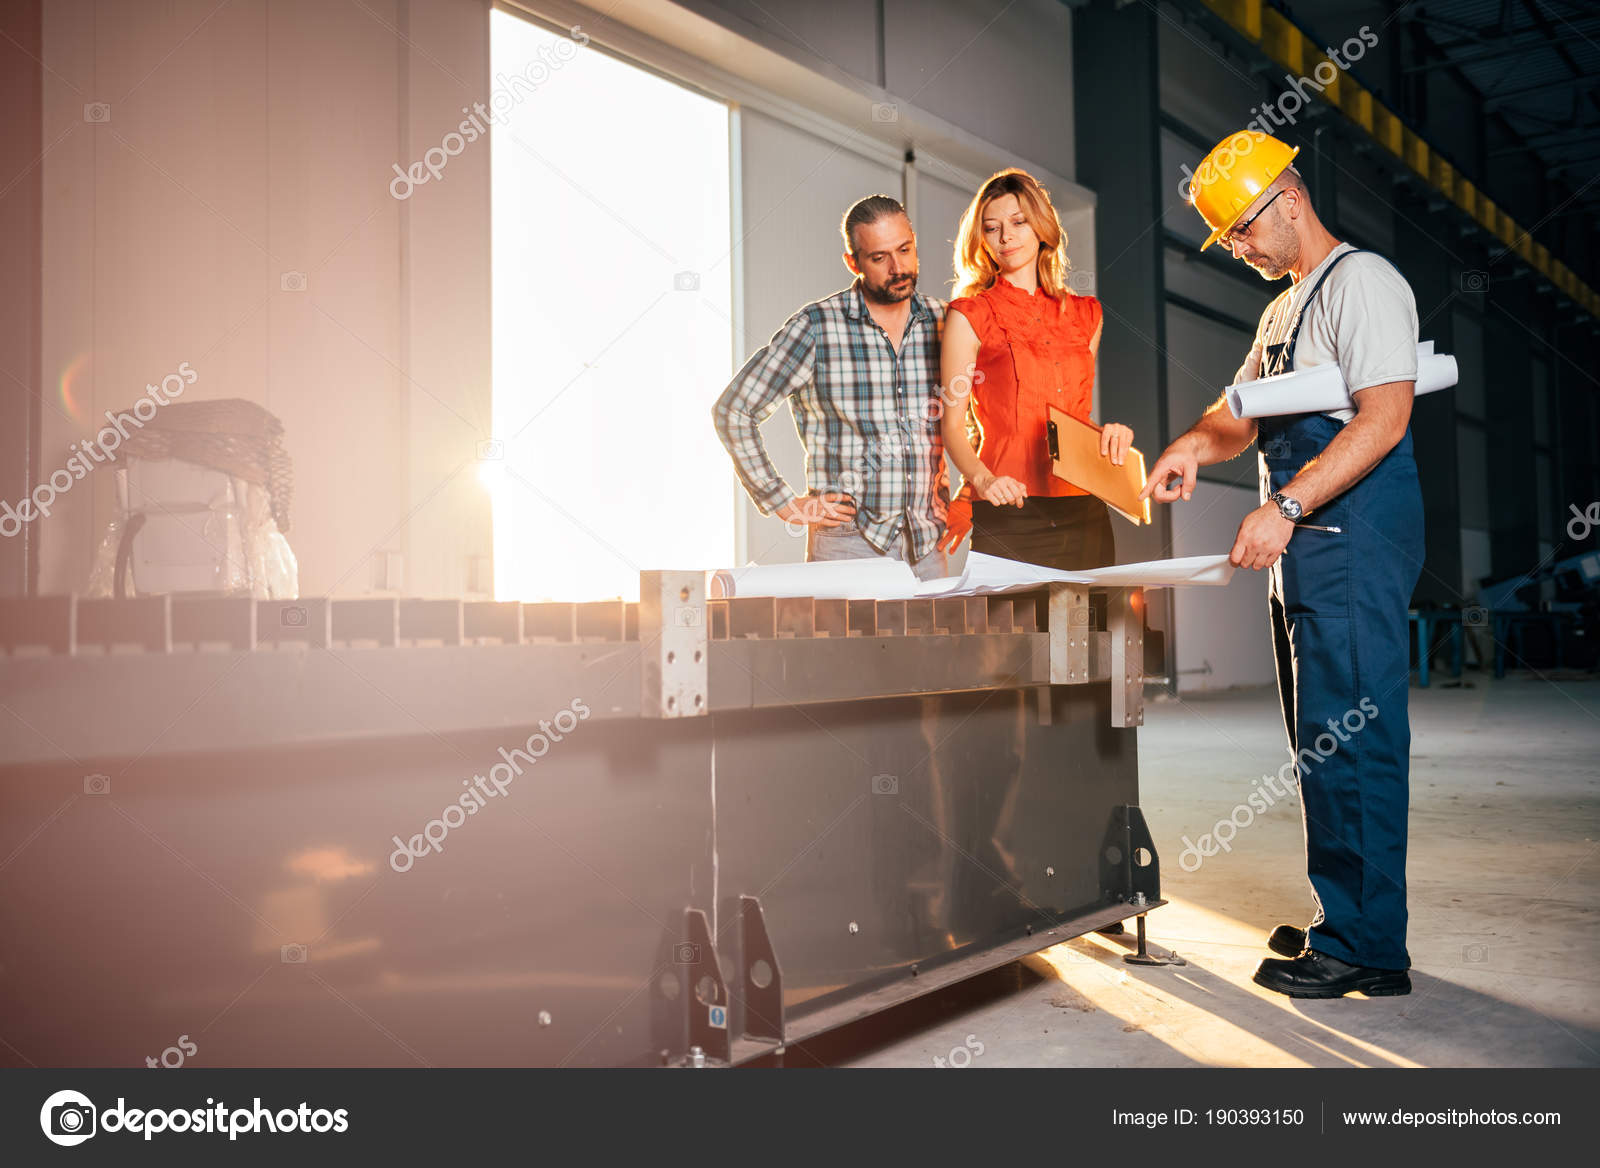 Architect team checking blueprint industrial construction site architect team checking blueprint industrial construction site foto de stock malvernweather Image collections